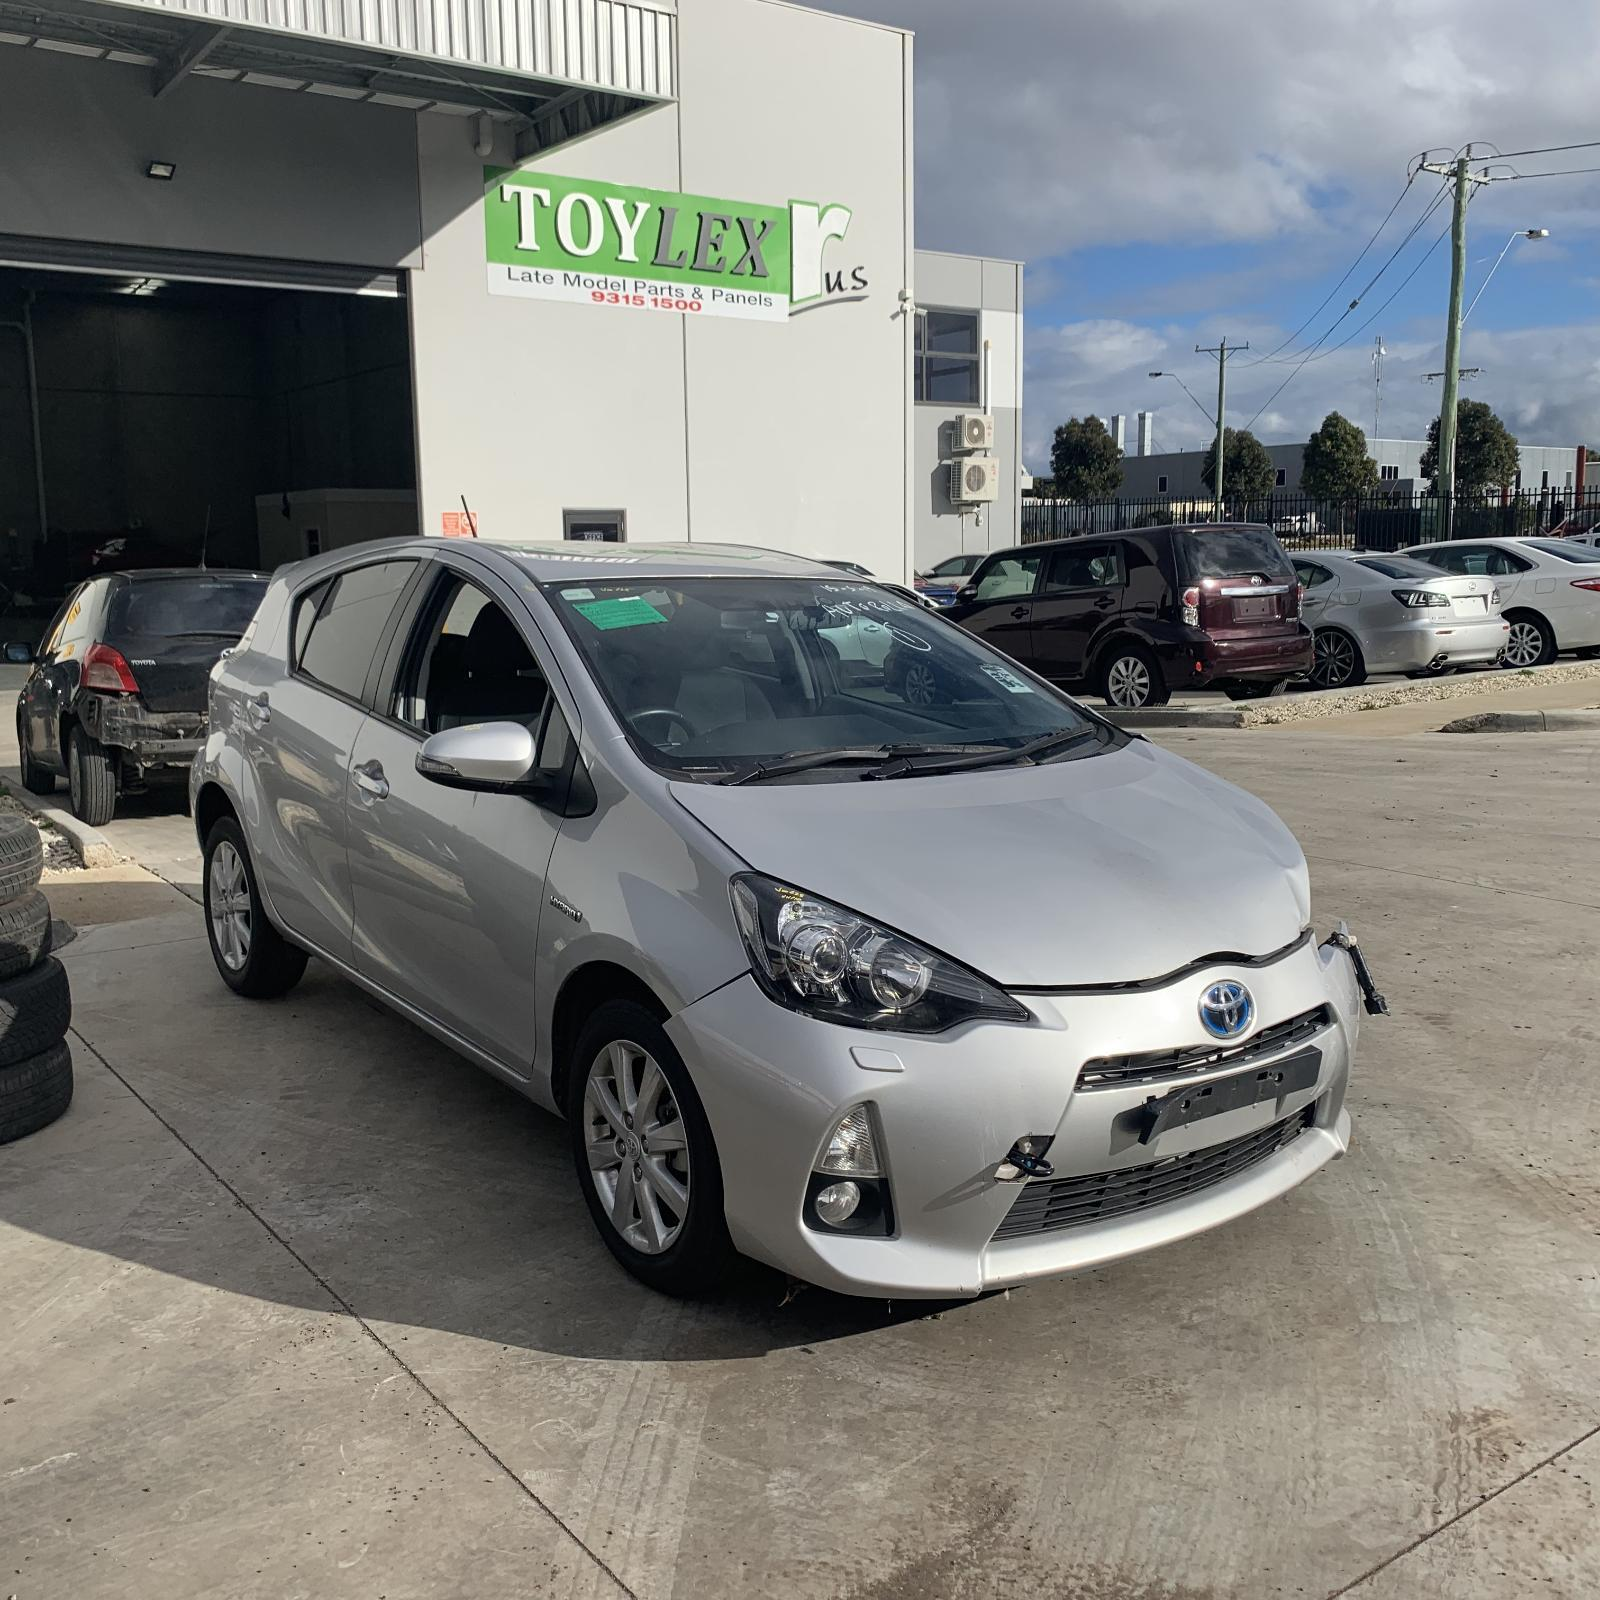 Toyota PRIUS C 1NZ-FXE 1.5L Engine Automatic FWD Transmission 03/12 - Current